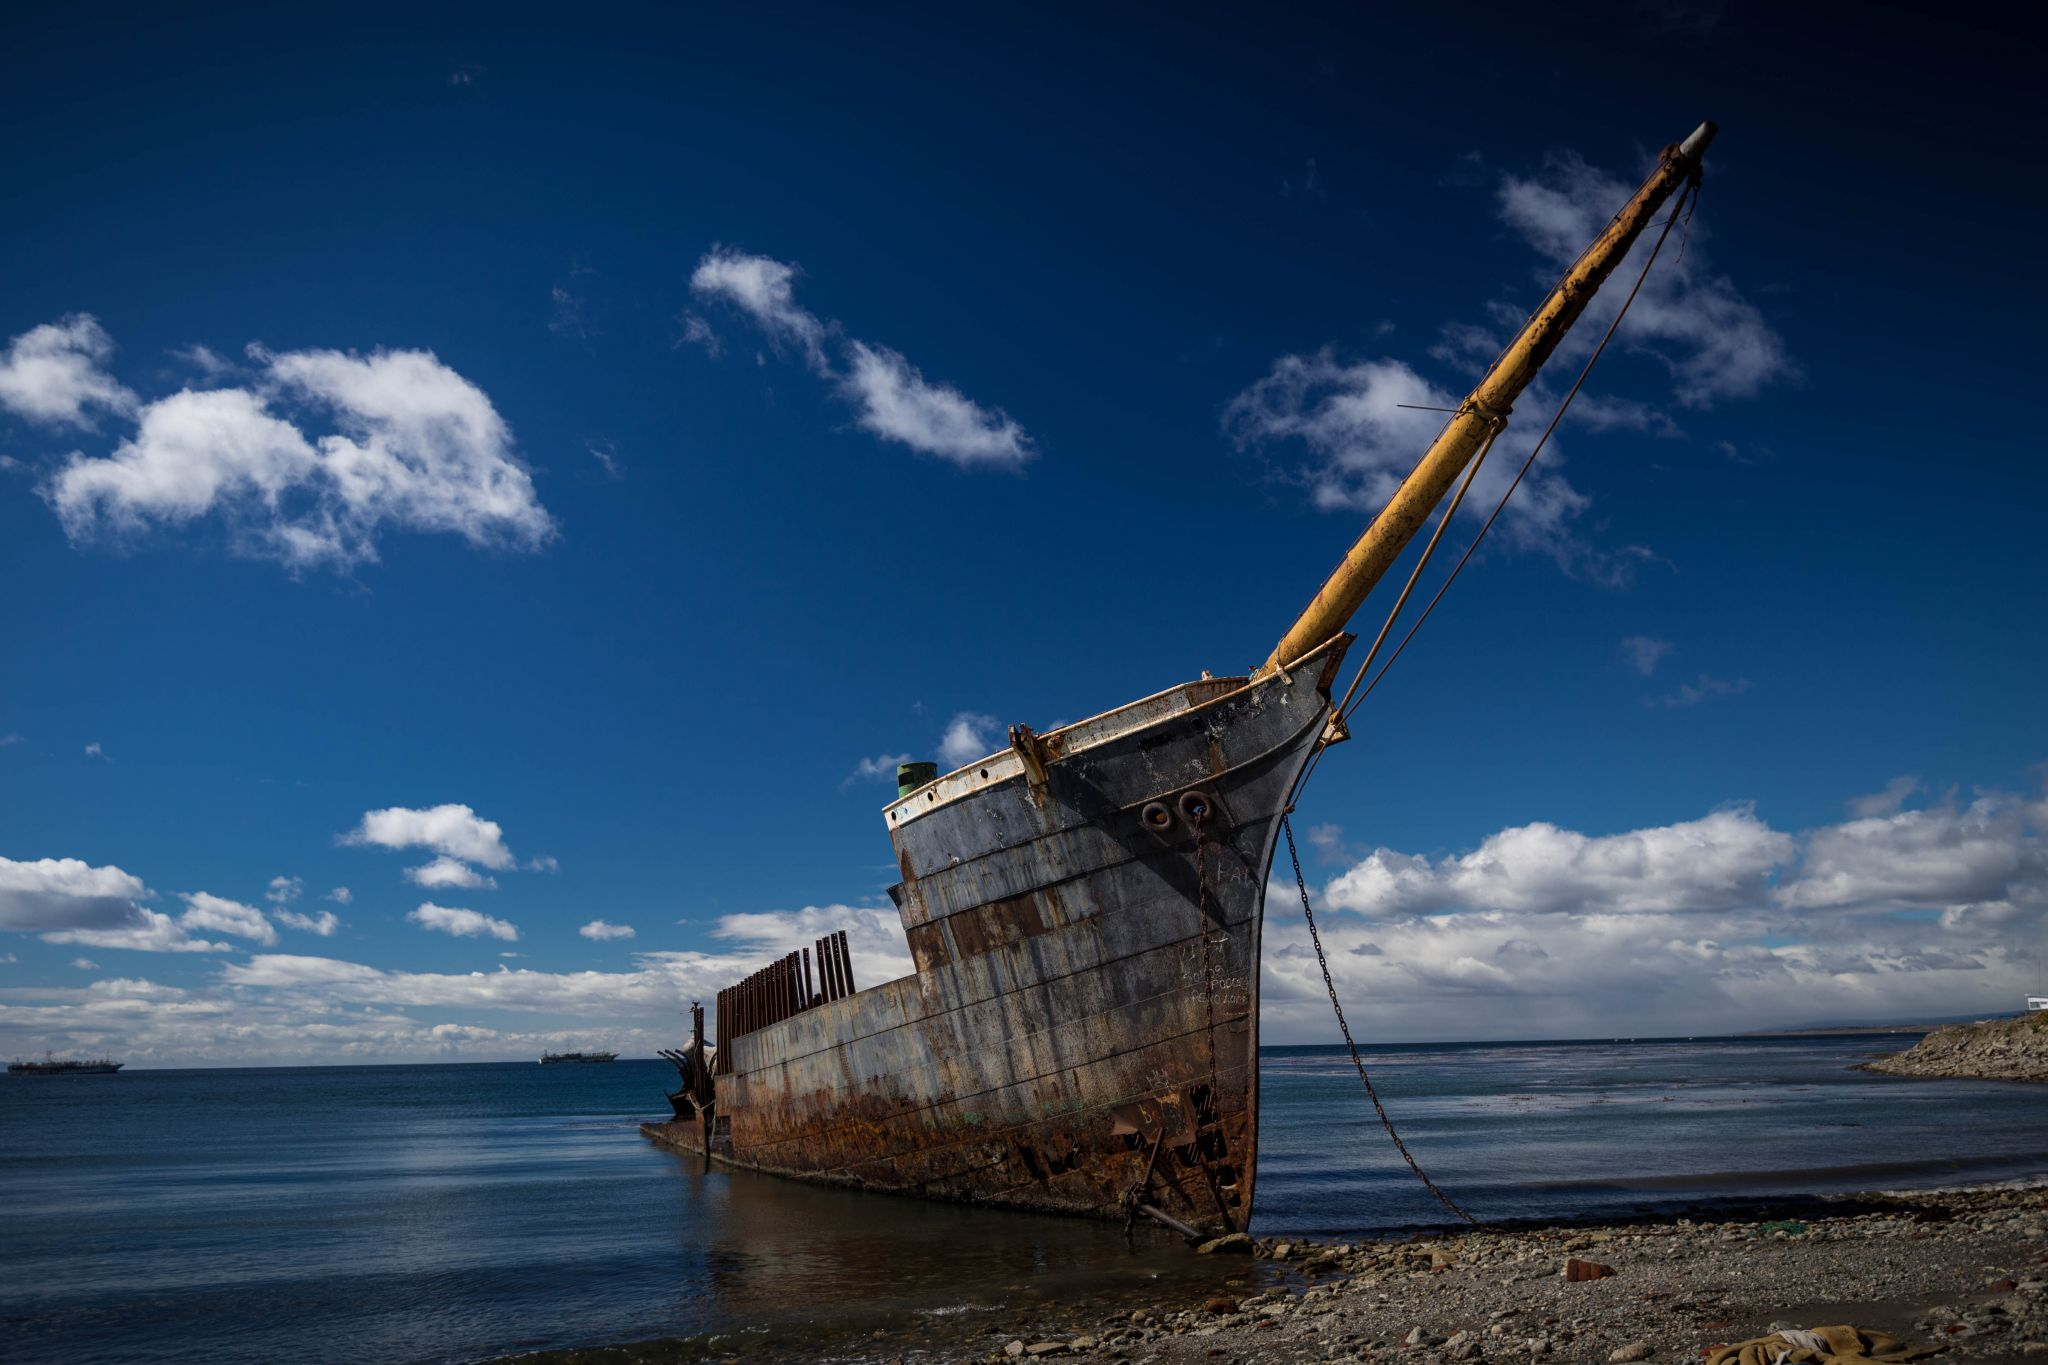 Lord Lonsdale Shipwreck, Punta Arena, Chile